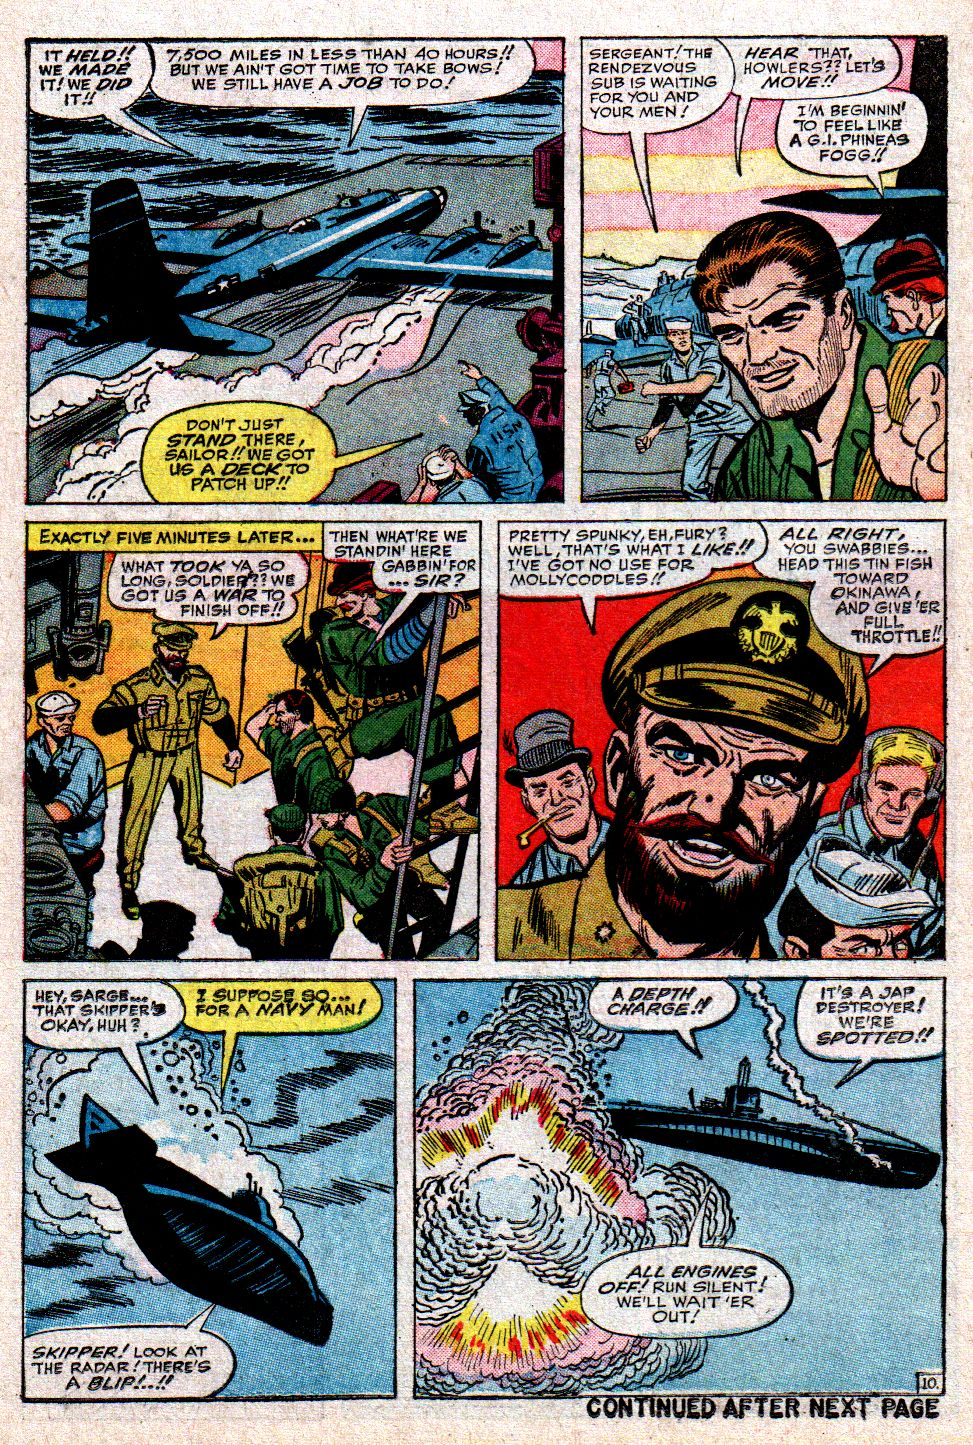 Read online Sgt. Fury comic -  Issue #10 - 14